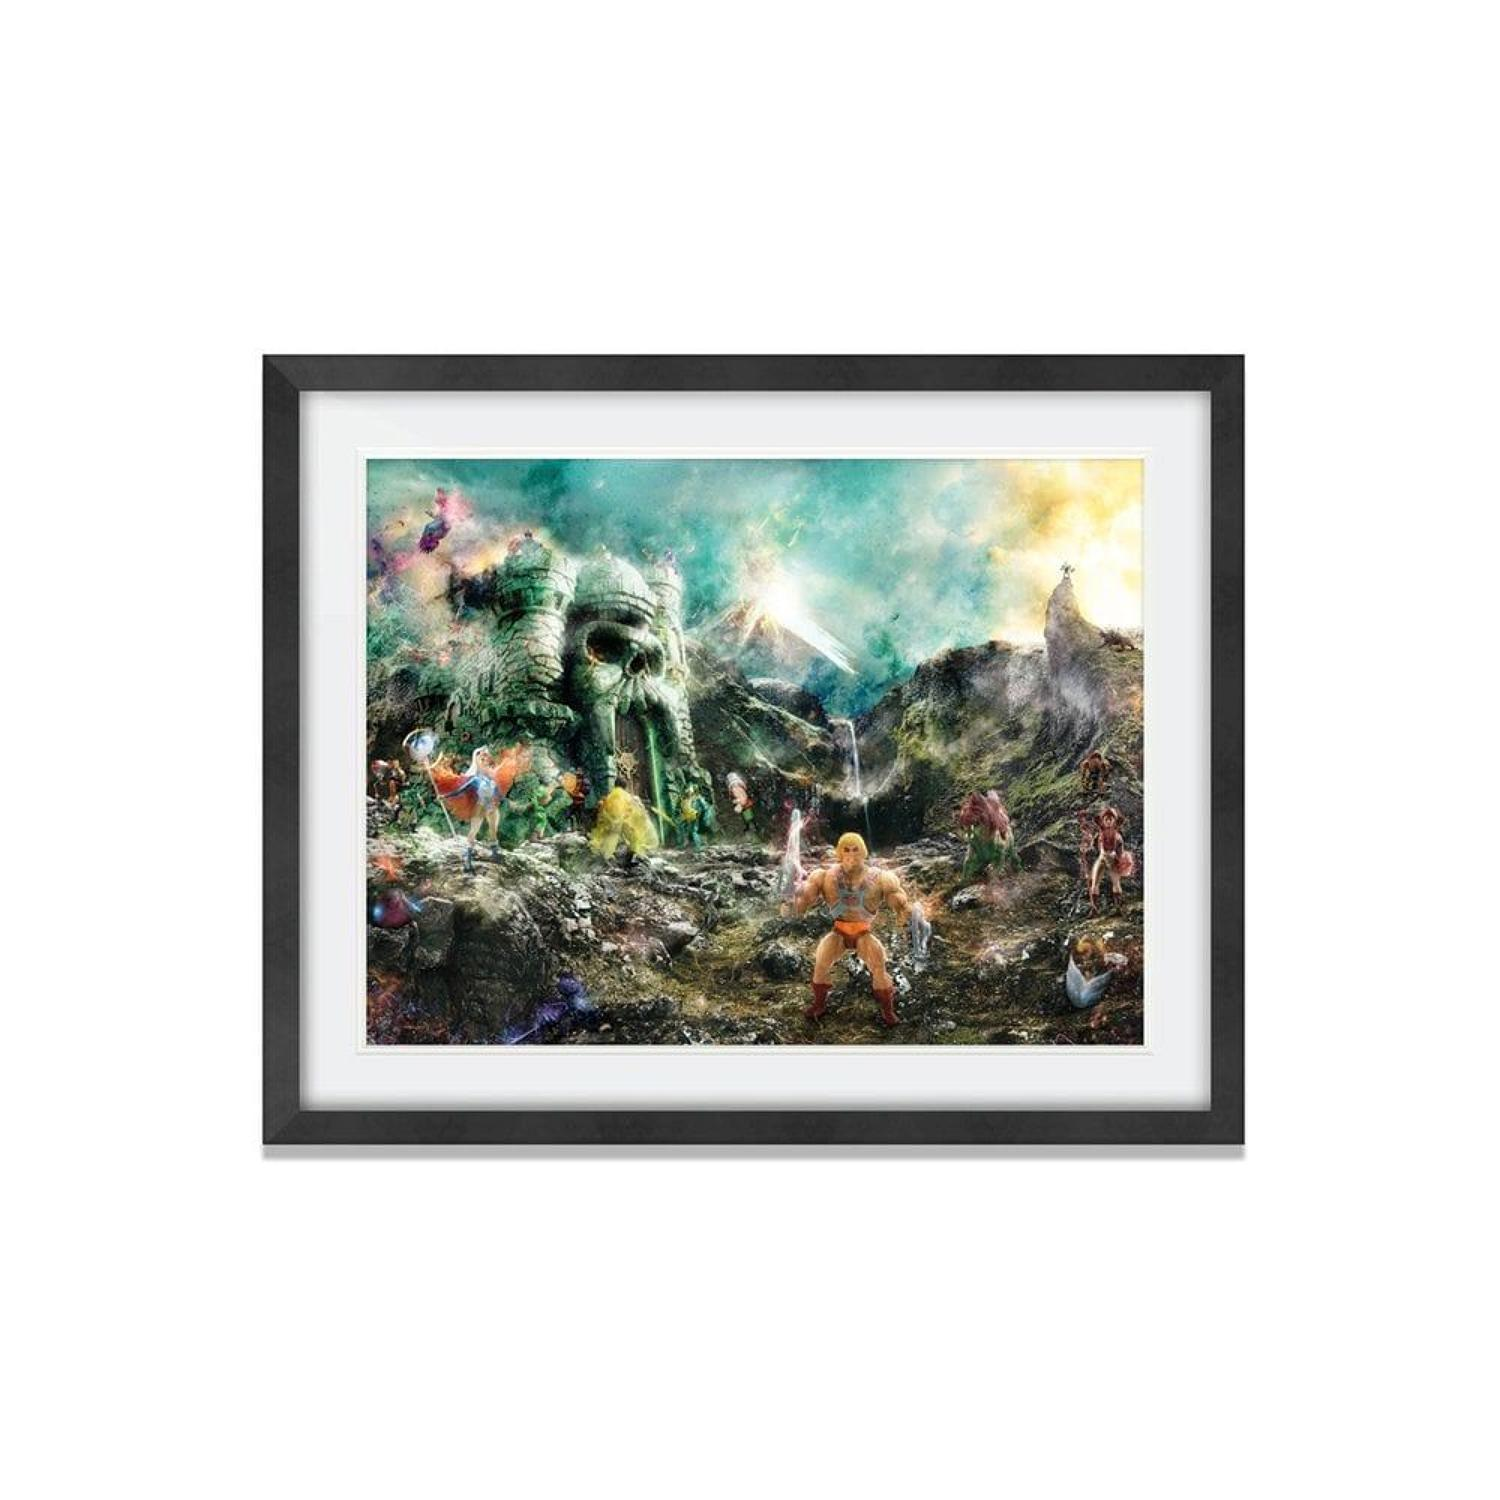 I Have The Power - Framed Art Print by Mark Davies